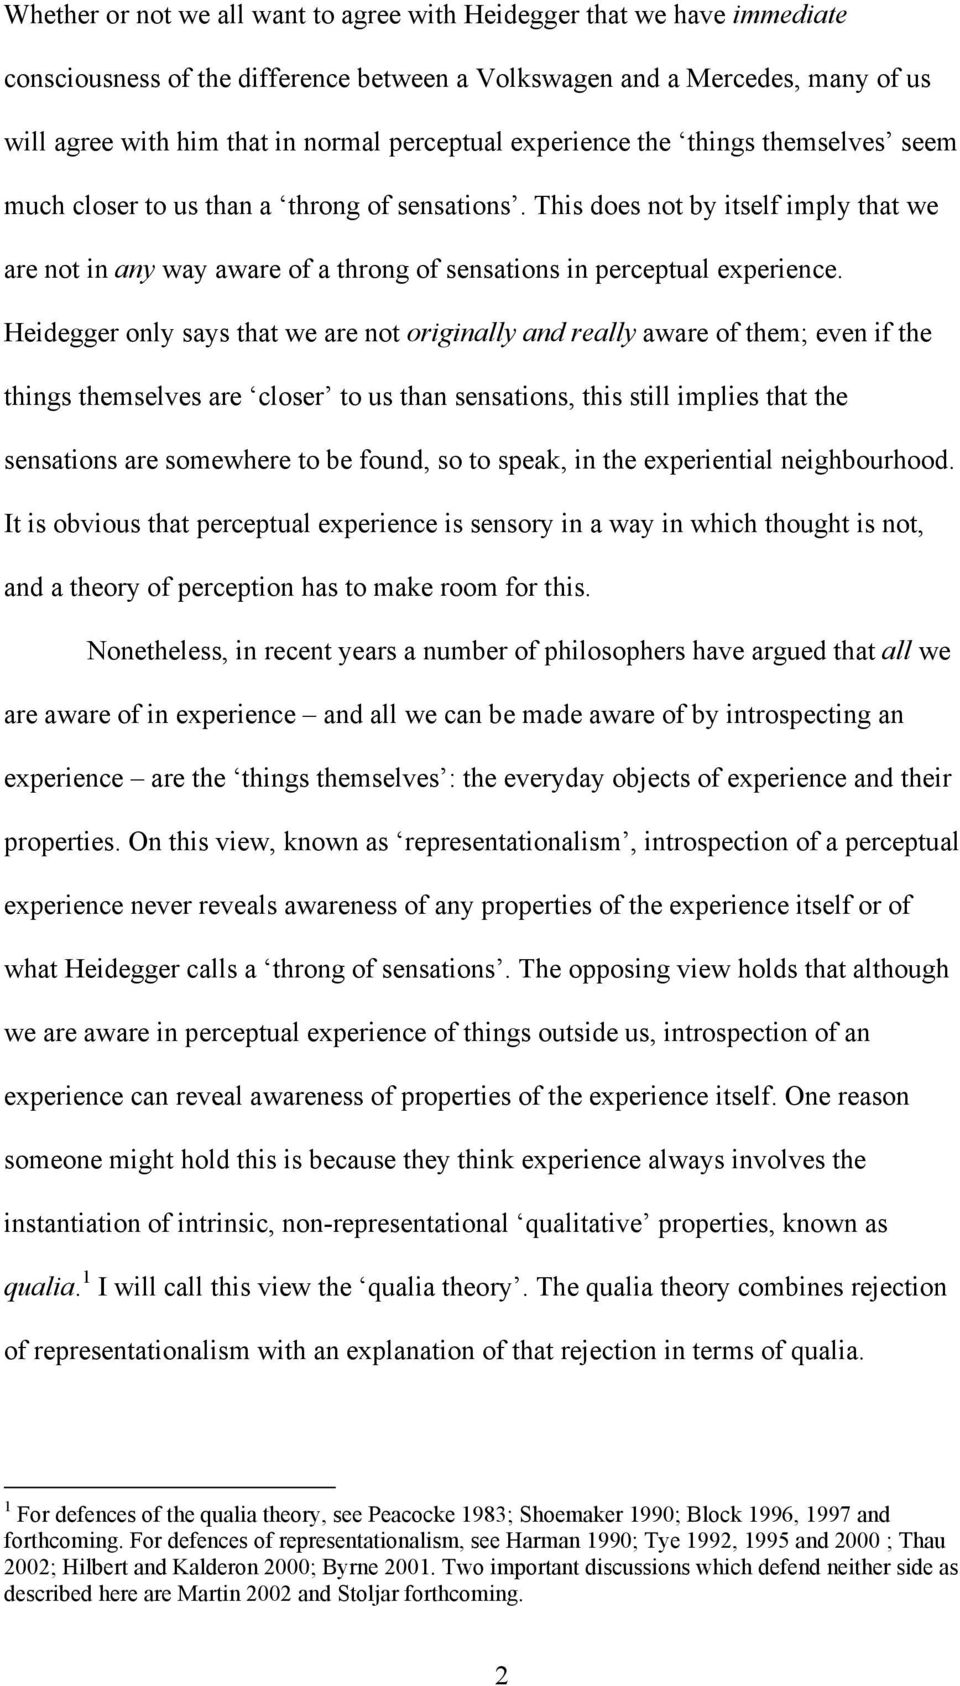 Heidegger only says that we are not originally and really aware of them; even if the things themselves are closer to us than sensations, this still implies that the sensations are somewhere to be